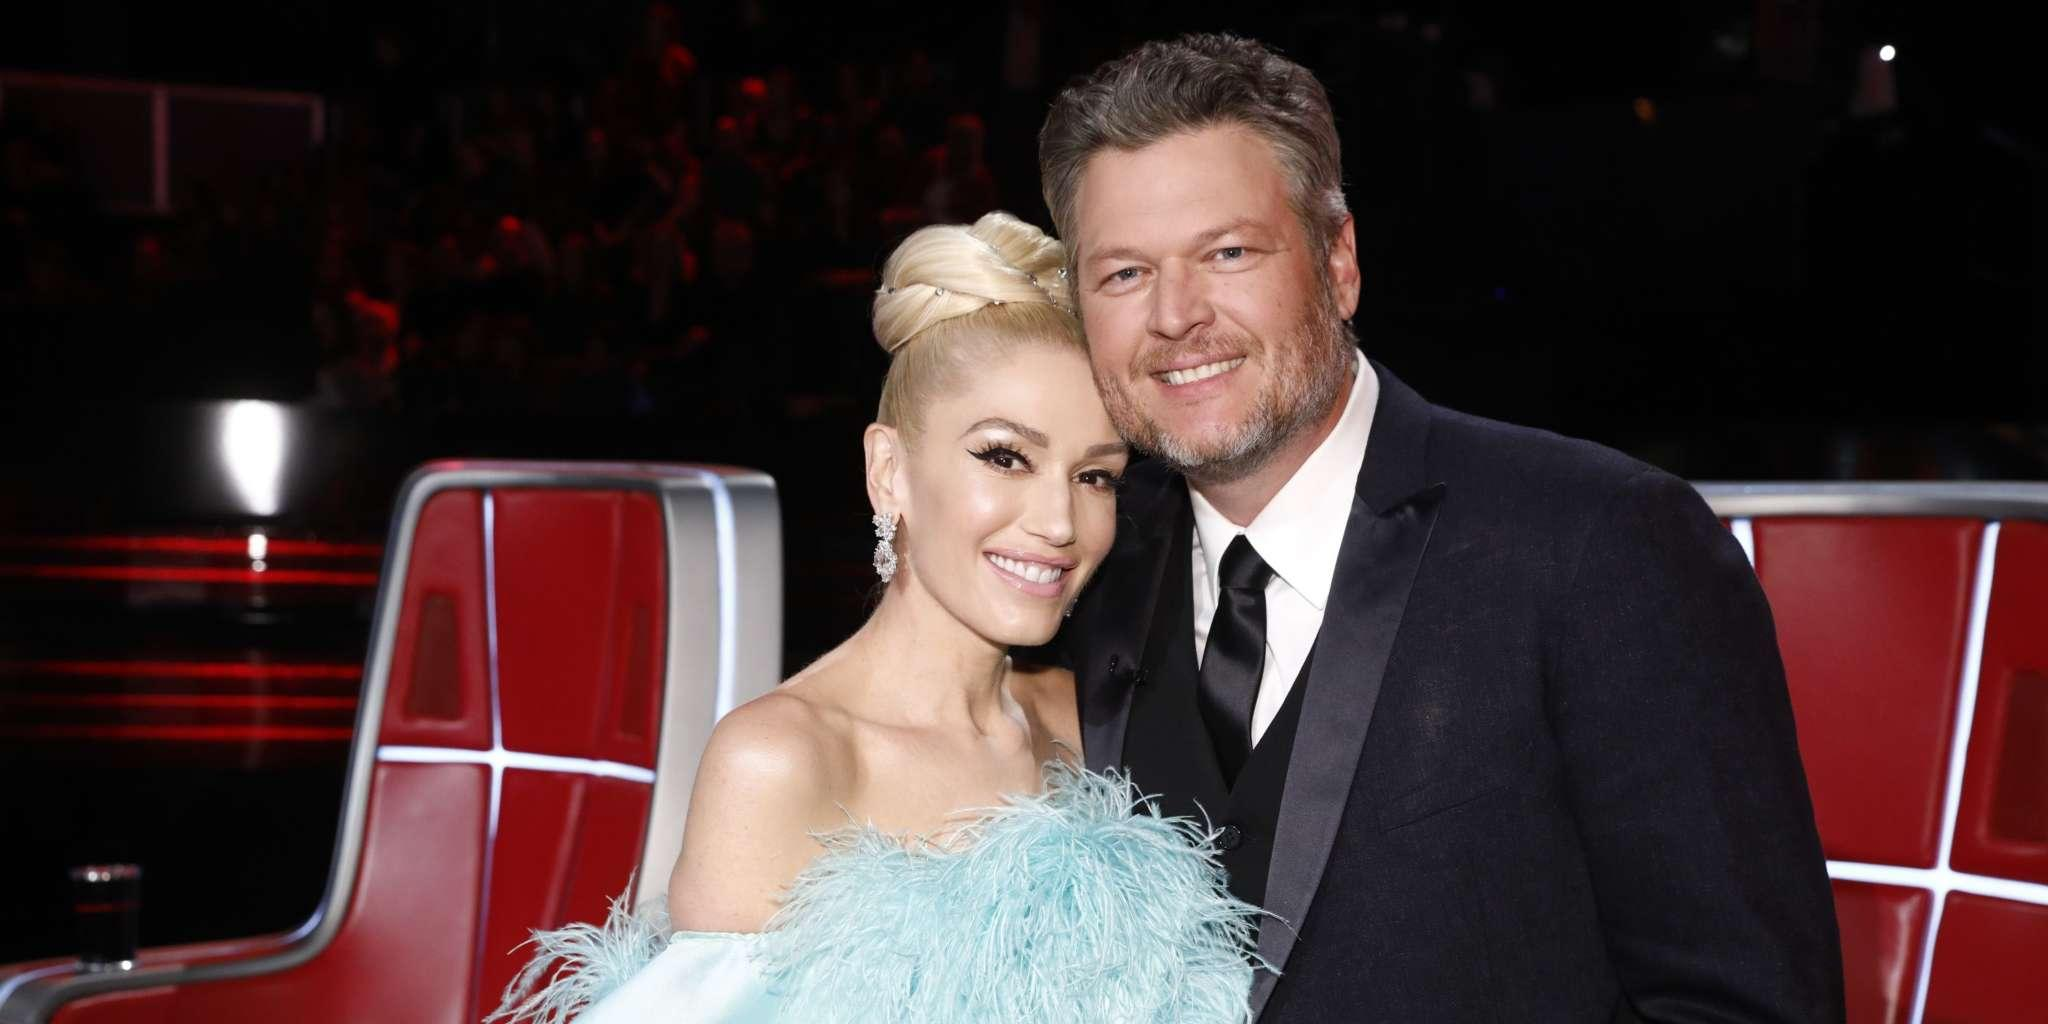 Blake Shelton Reportedly Looking Forward To Spending 'The Rest Of His Life' With Gwen Stefani - Here's Why!